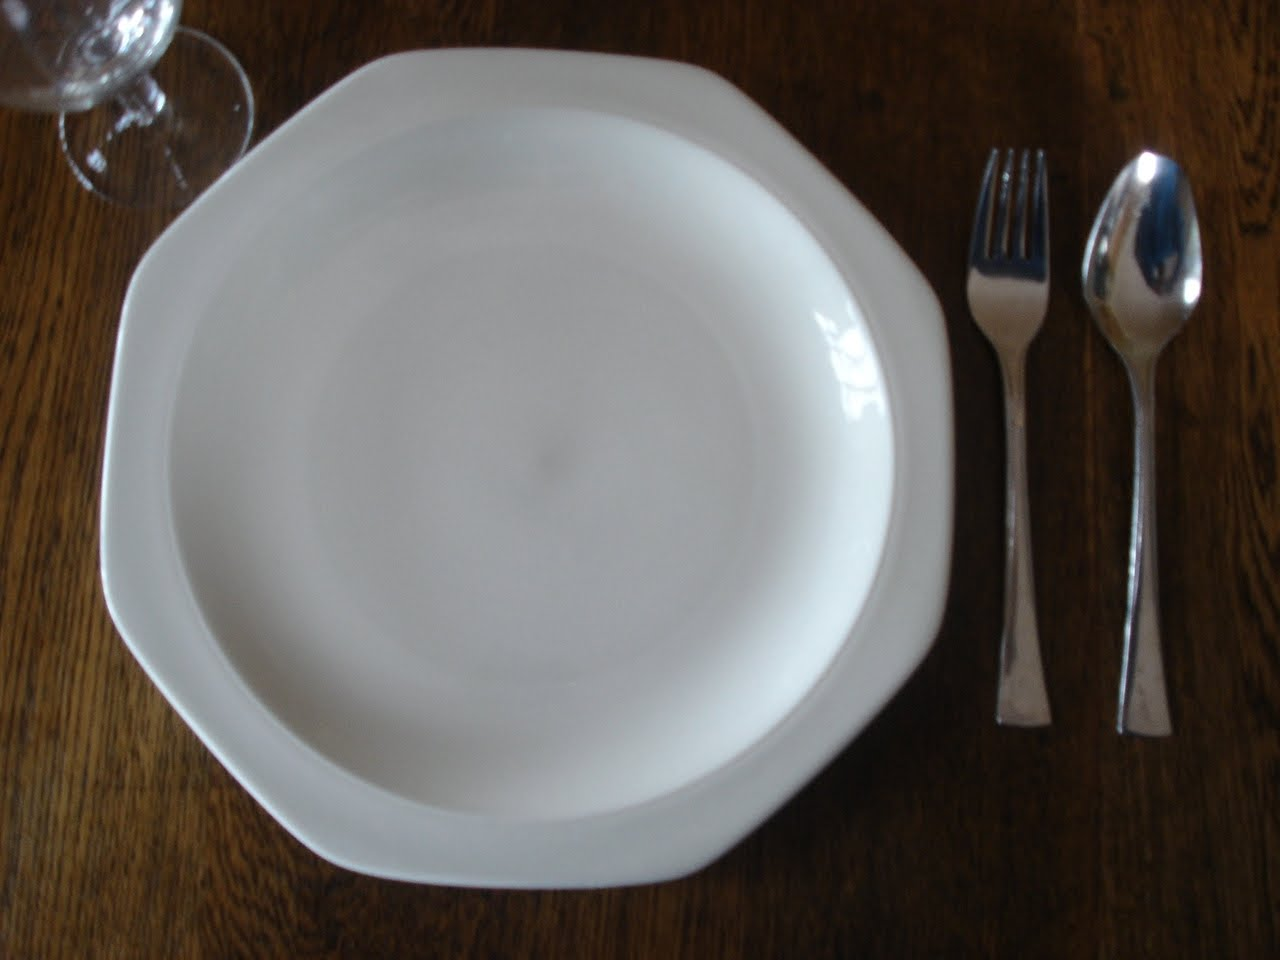 Singaporean Table Manners and Tableware & A Singaporean Uncle in Australia: Singaporean Table Manners and ...